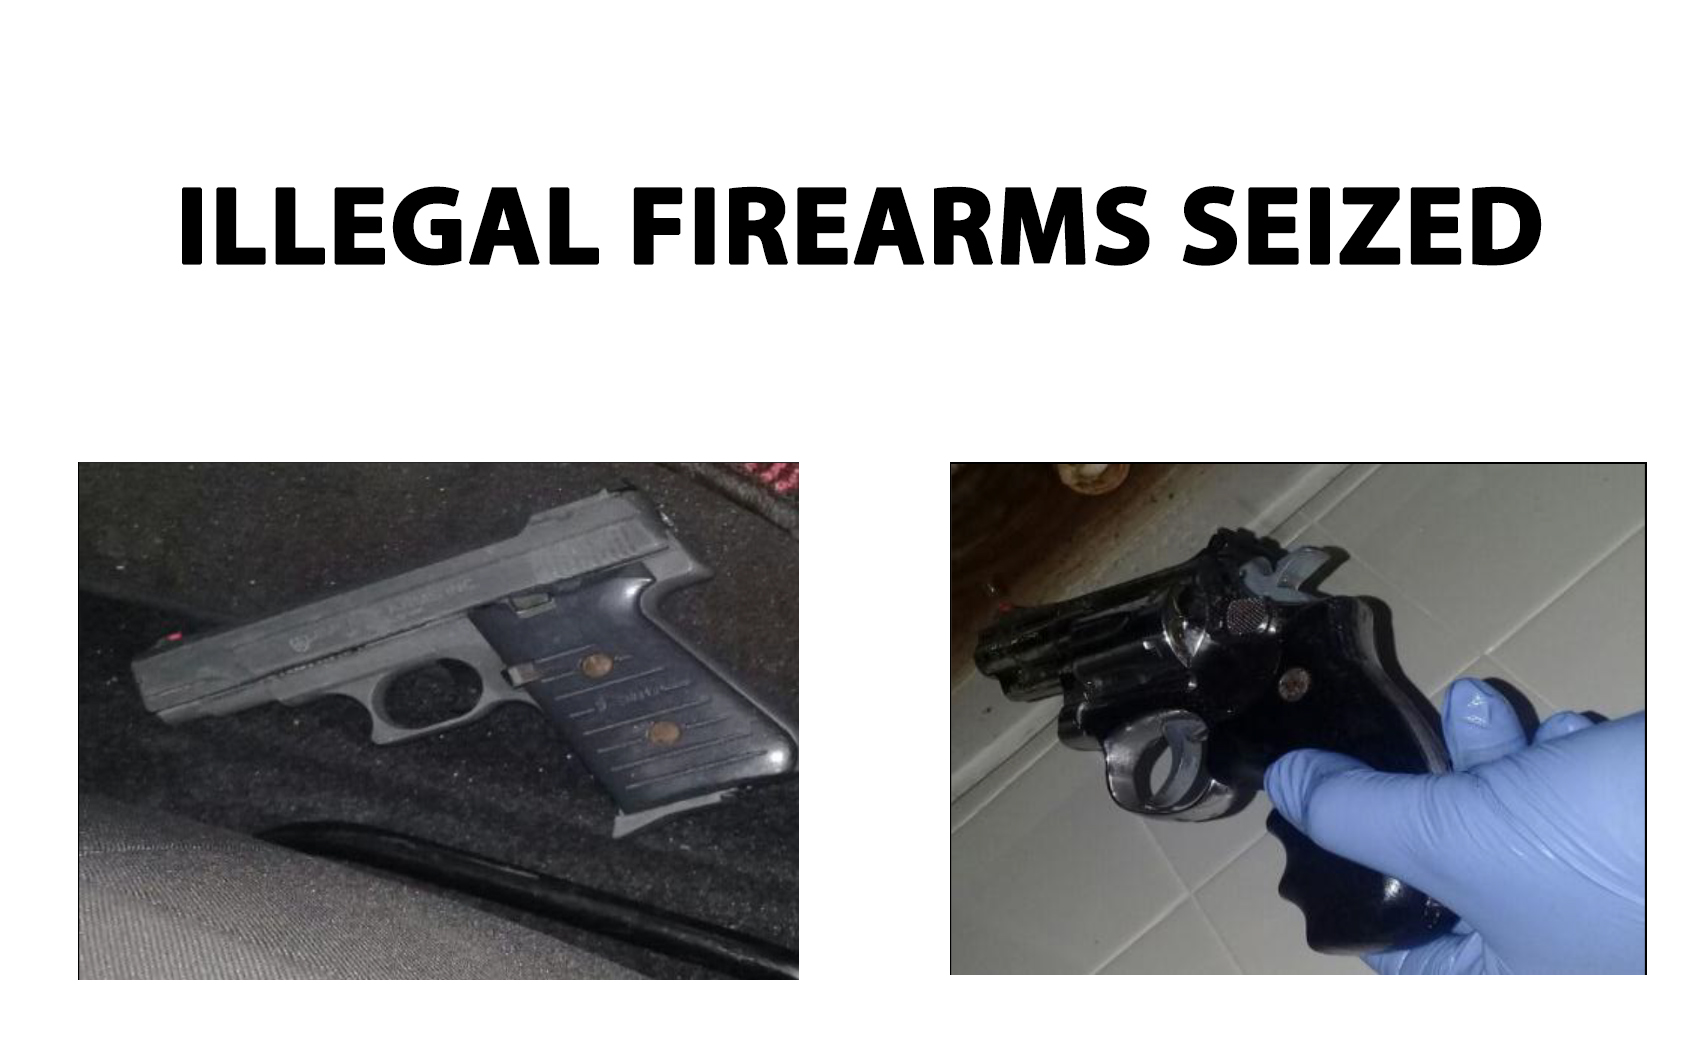 Man killed in industrial accident; illegal firearms seized